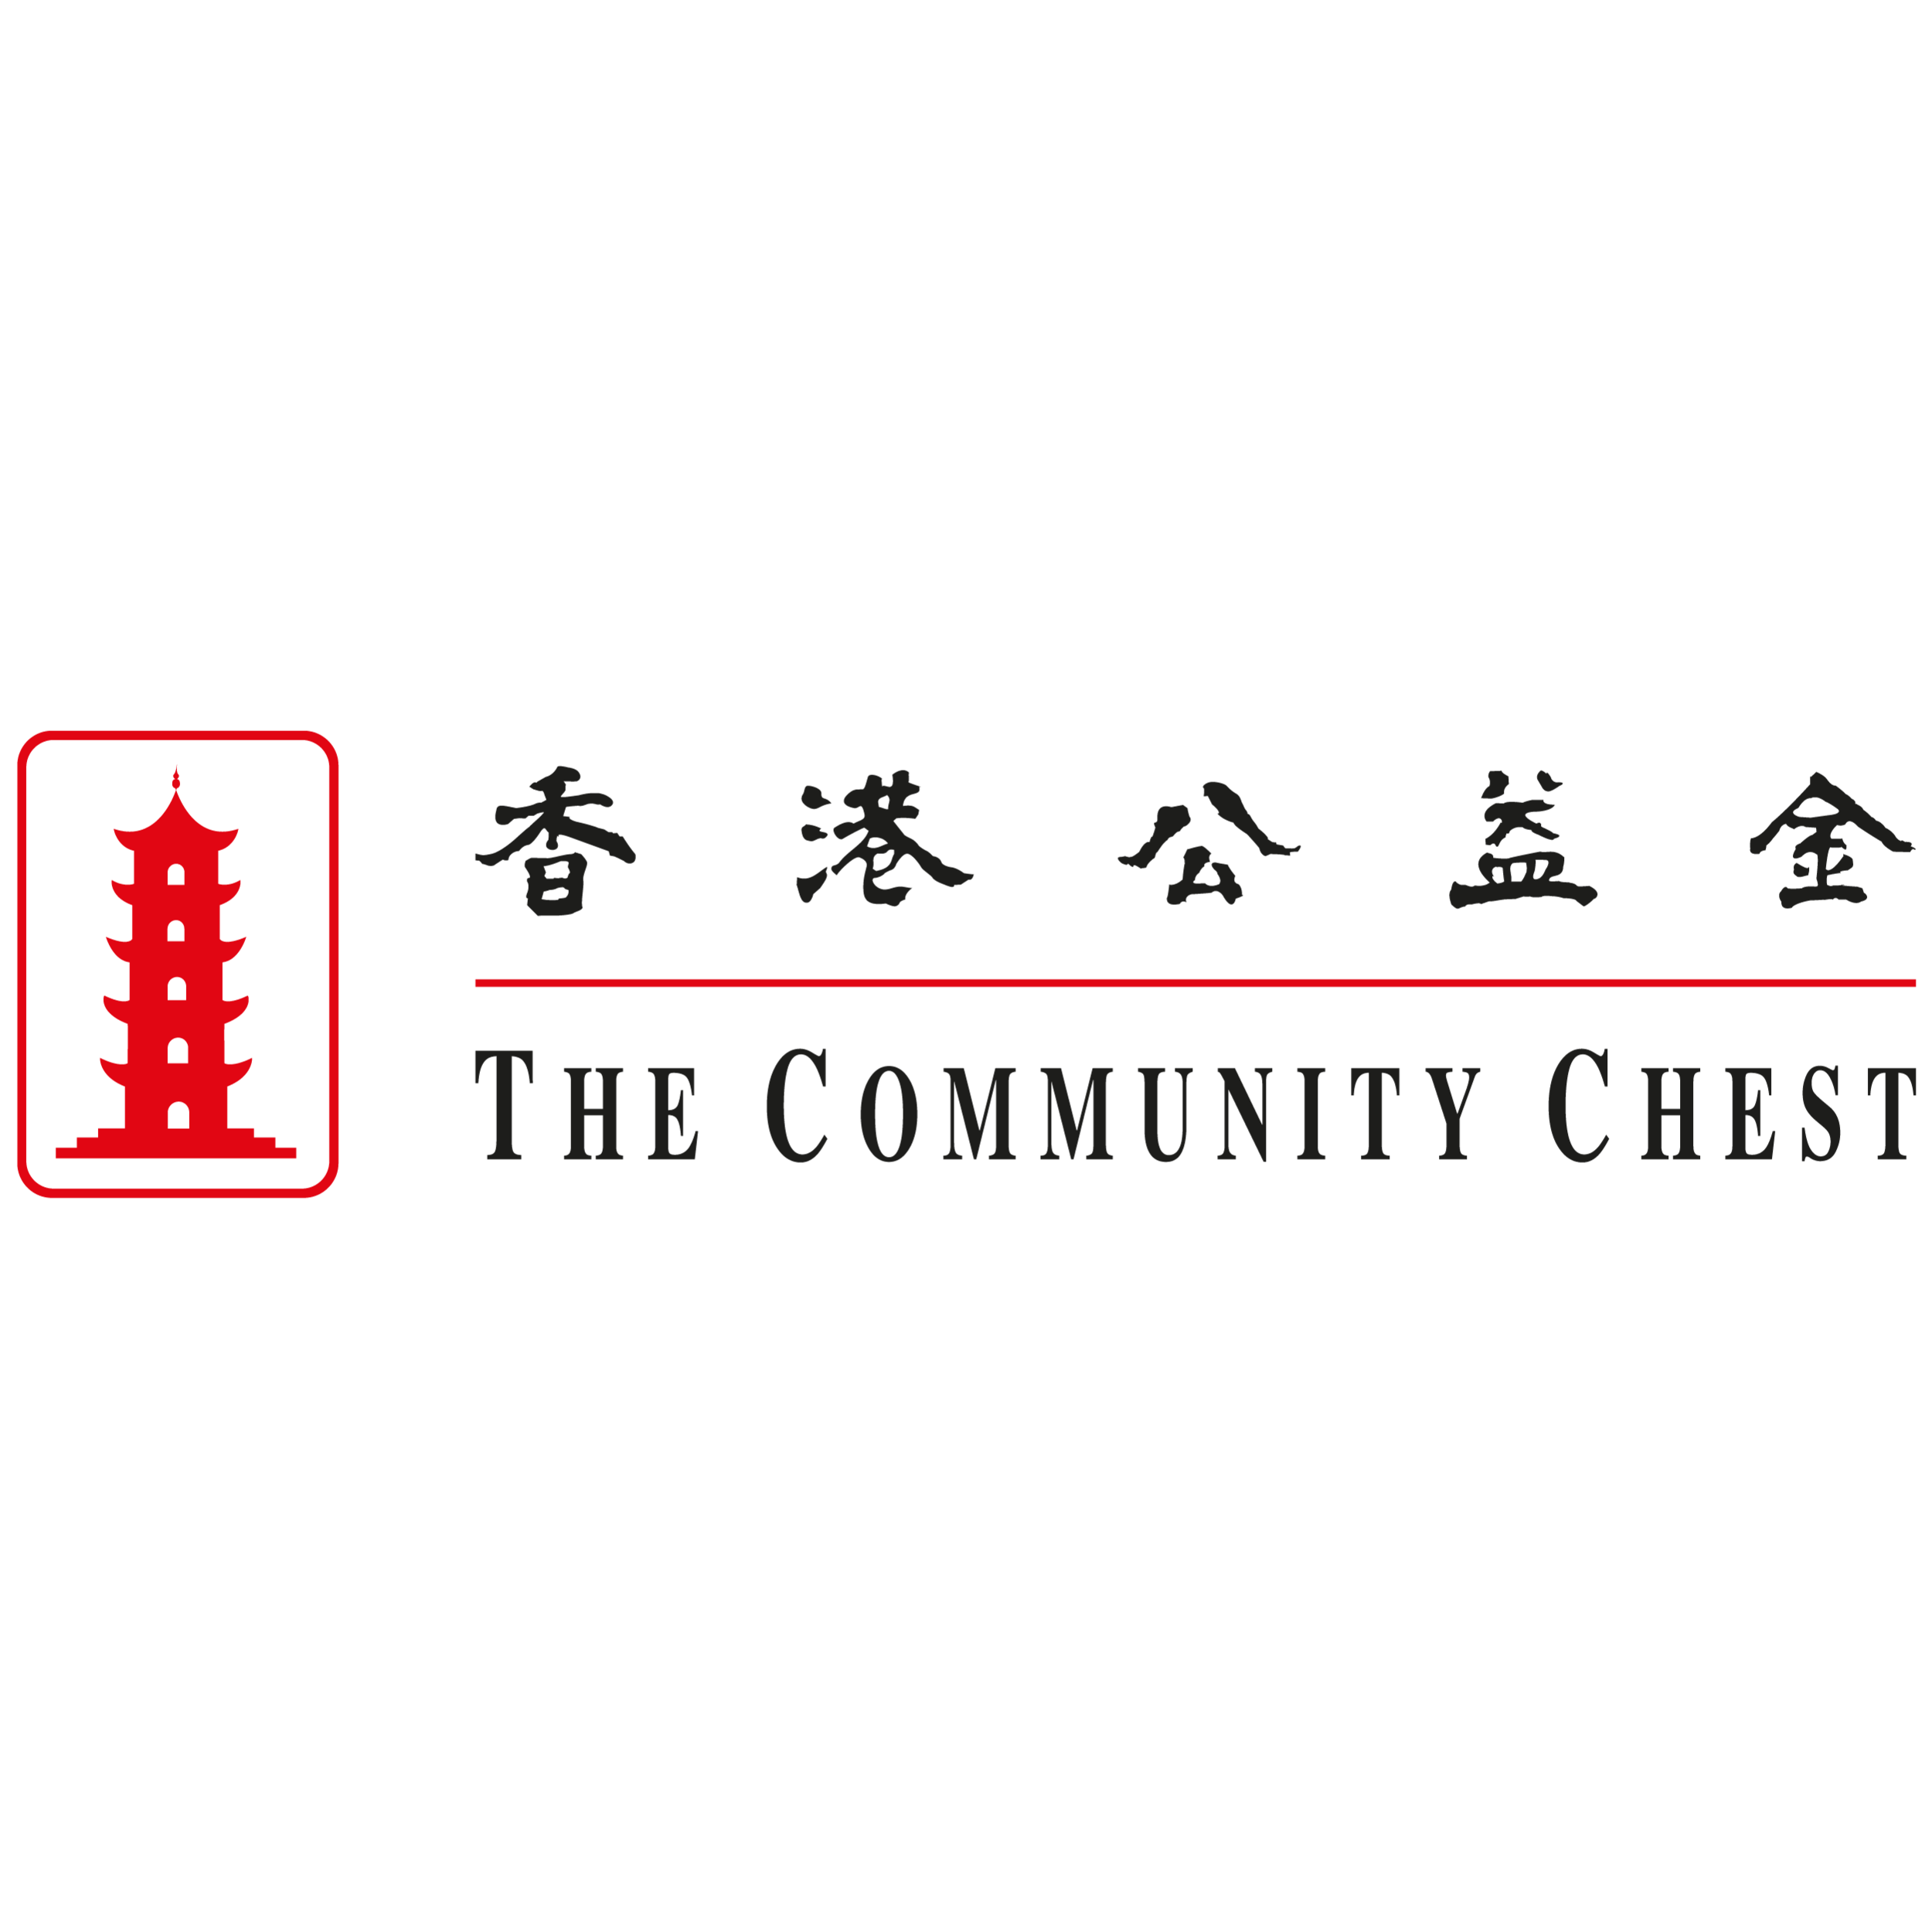 香港公益金 The Community Chest